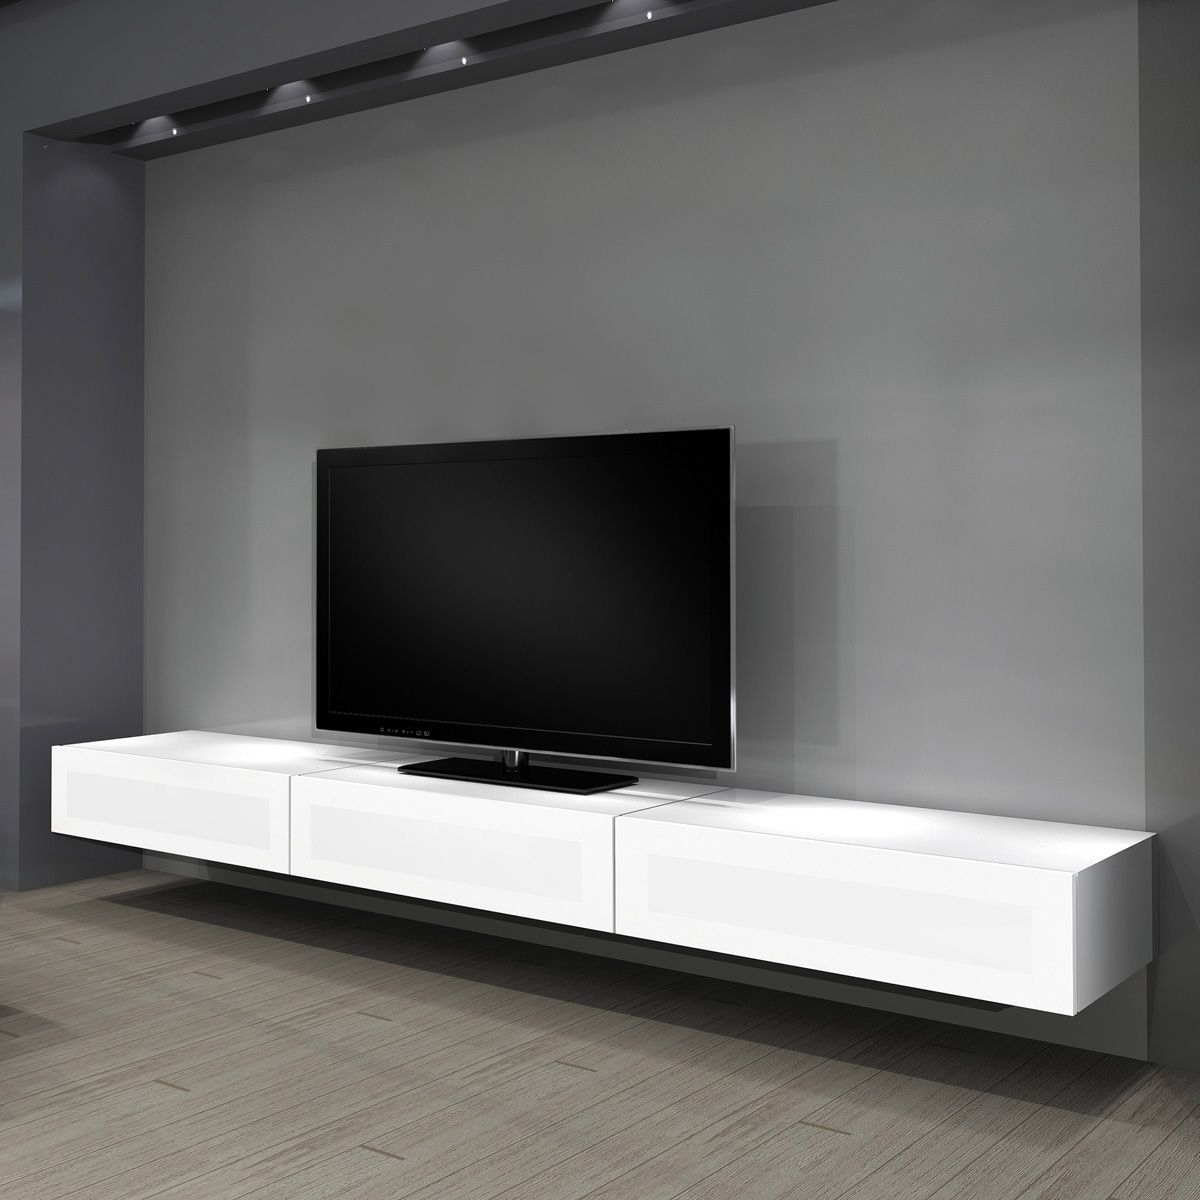 Modern Design Tv Cabinets Inside Favorite Modern Design Living Room With Ikea Wall Mount Tv Console Cabinet (View 8 of 20)